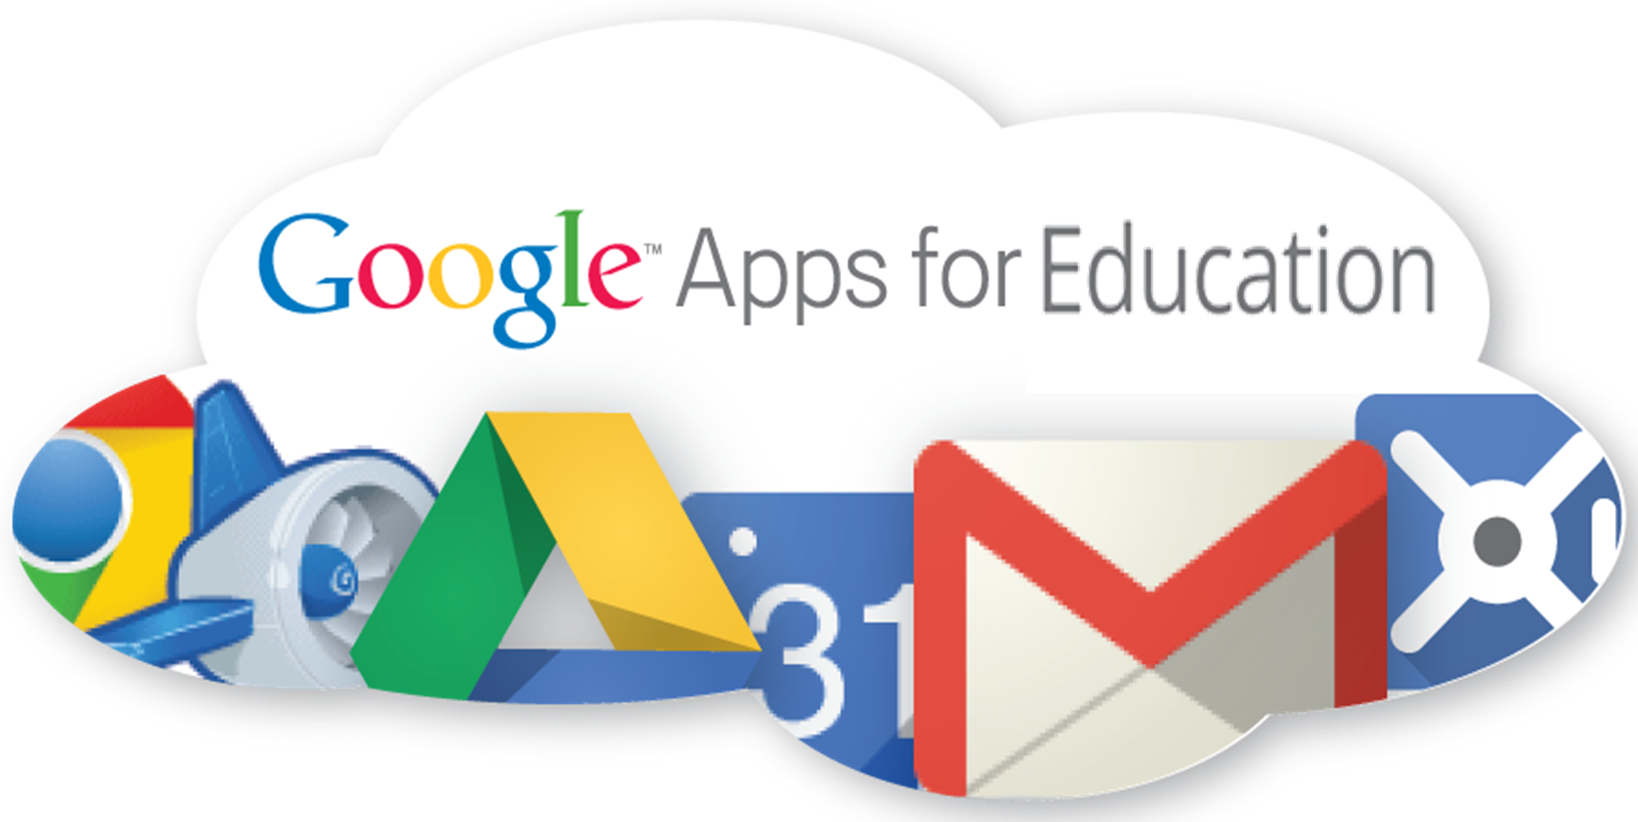 8 Effective Ways To Bring Life To Your Classroom With Google Apps